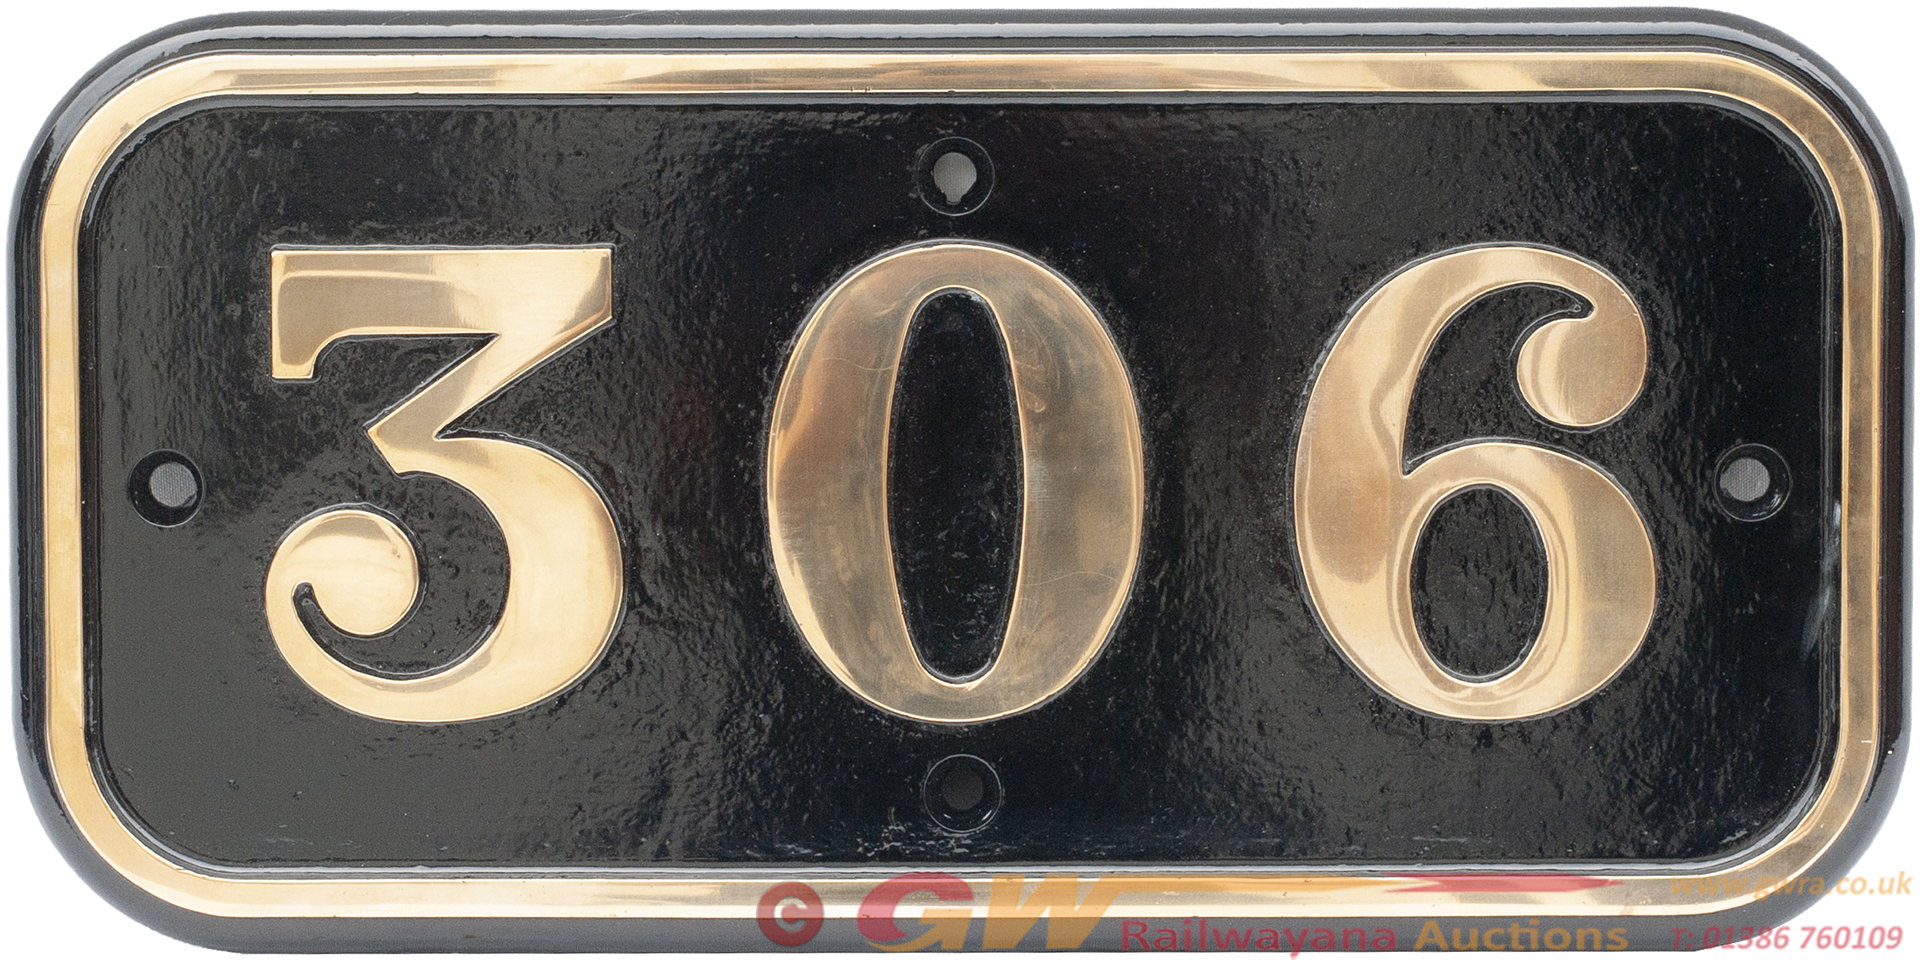 GWR Brass Cabside Numberplate 306 Ex Taff Vale